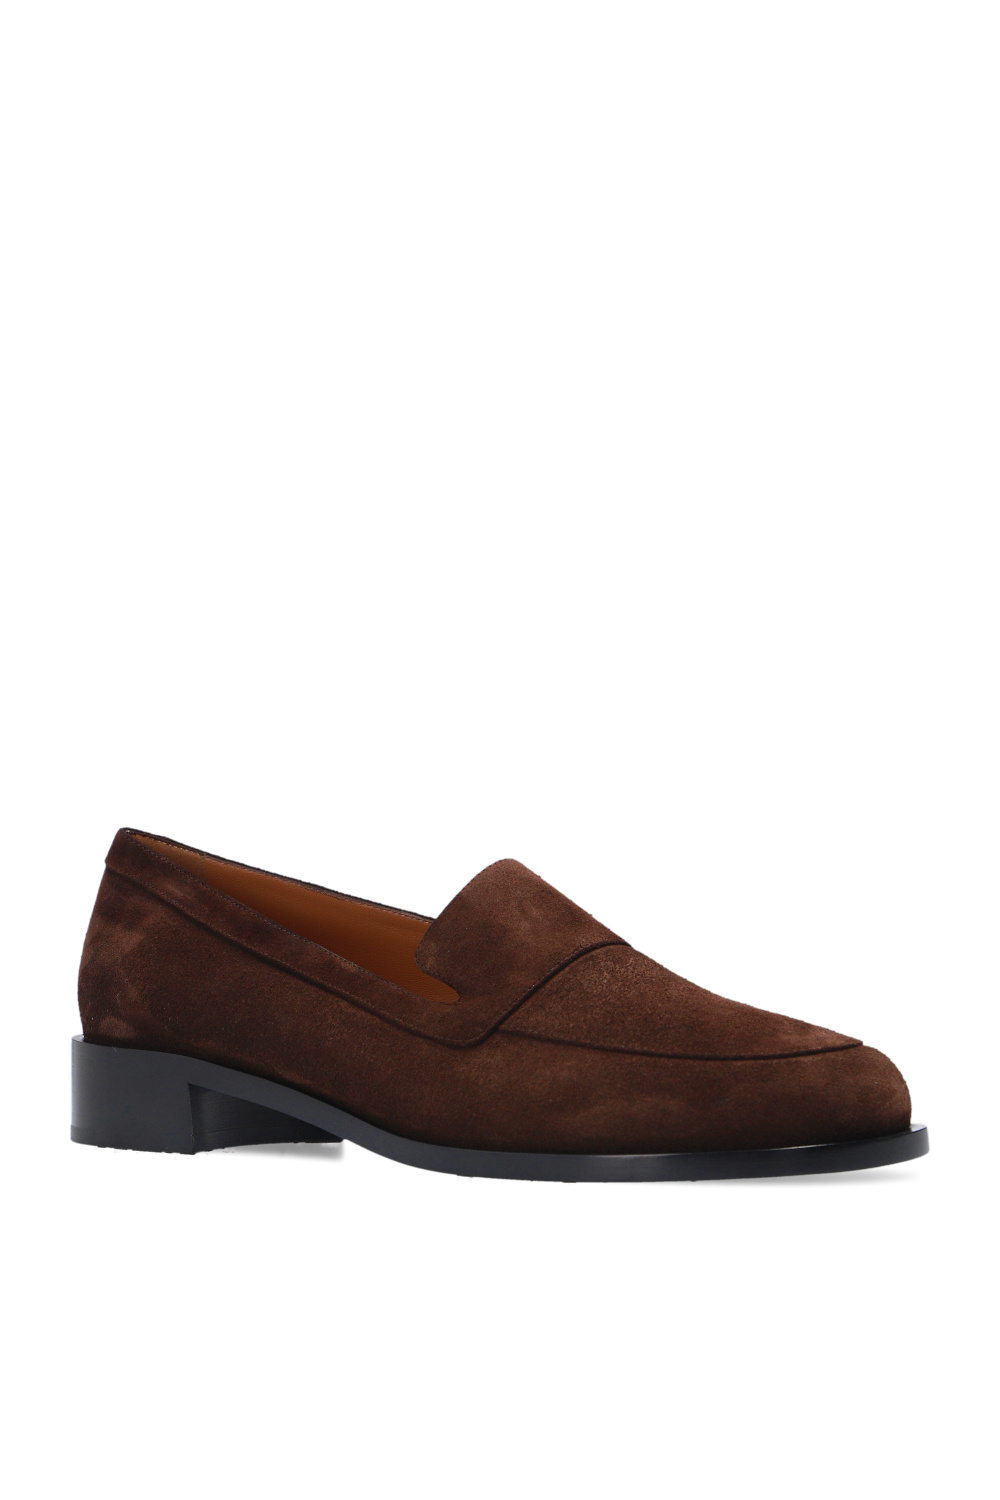 The Row 'Garcon' loafers